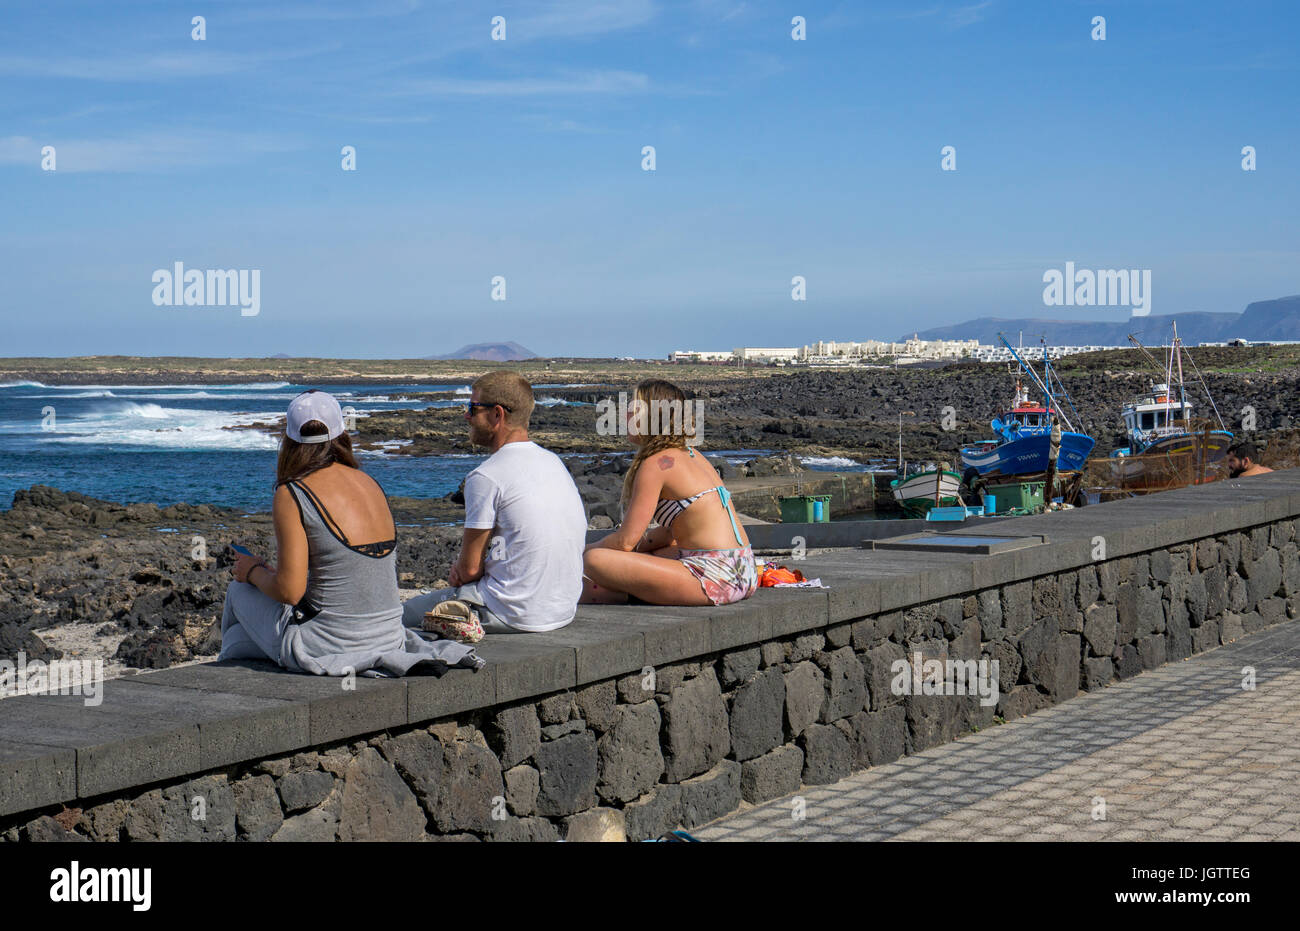 Young people sitting on harbour mural, village La Santa at north coast of Lanzarote island, Canary islands, Spain, - Stock Image